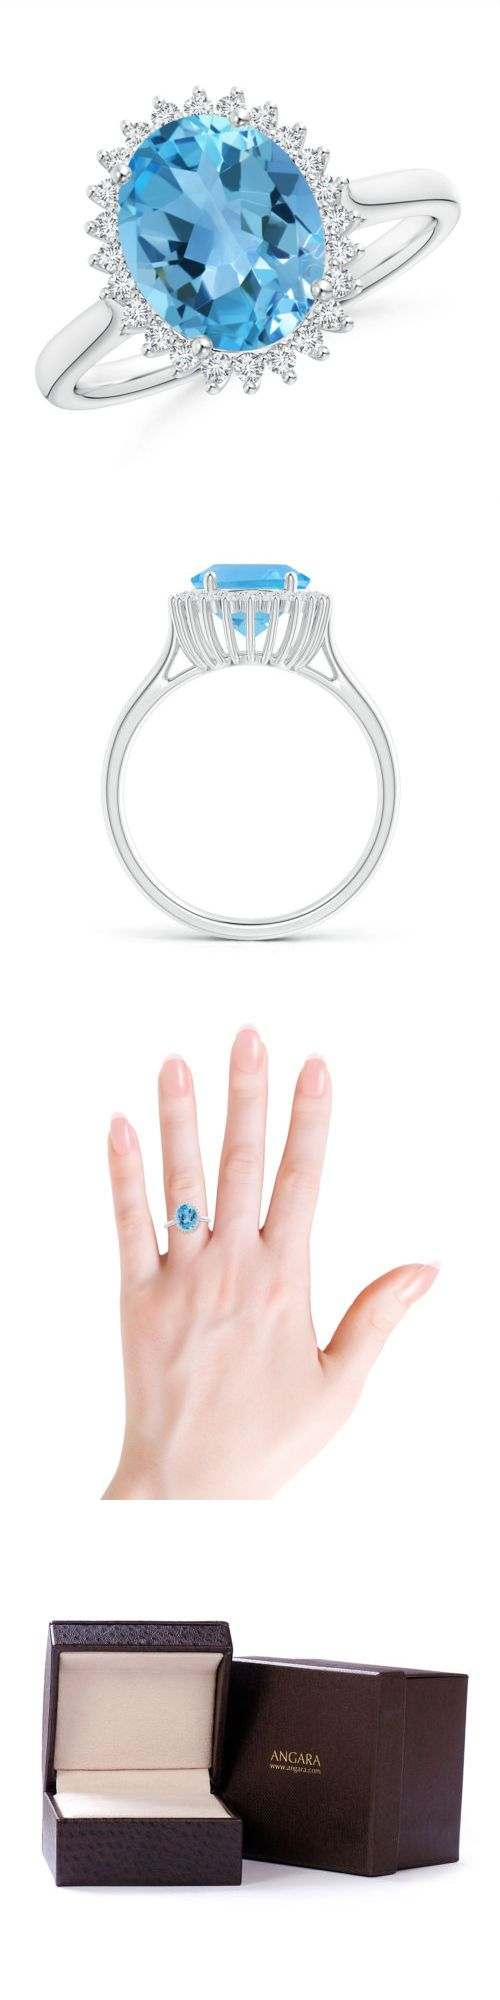 Gemstone 177020: Vintage Style Solitaire Blue Topaz Diamond Cocktail Engagement Ring In 14K Gold BUY IT NOW ONLY: $767.99